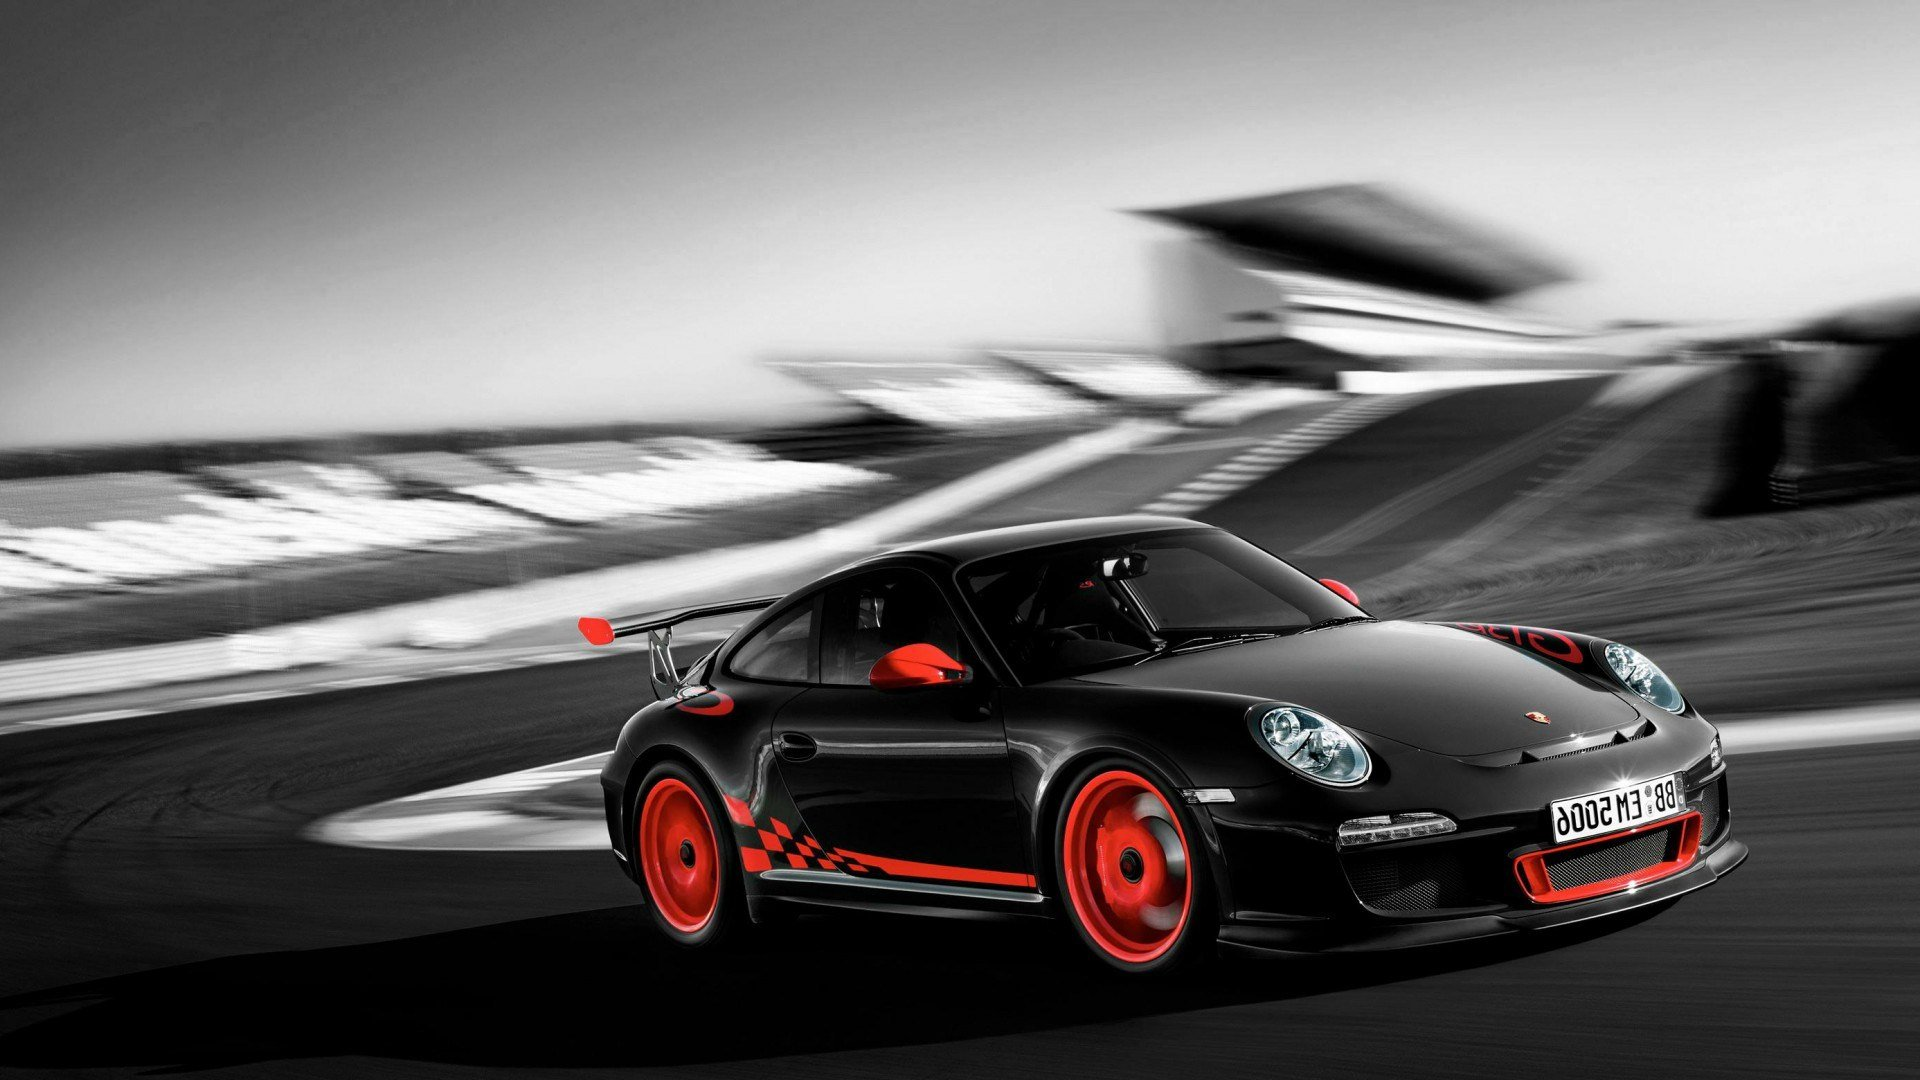 Latest Porsche Wallpaper For My Desktop Wallpapersafari Free Download